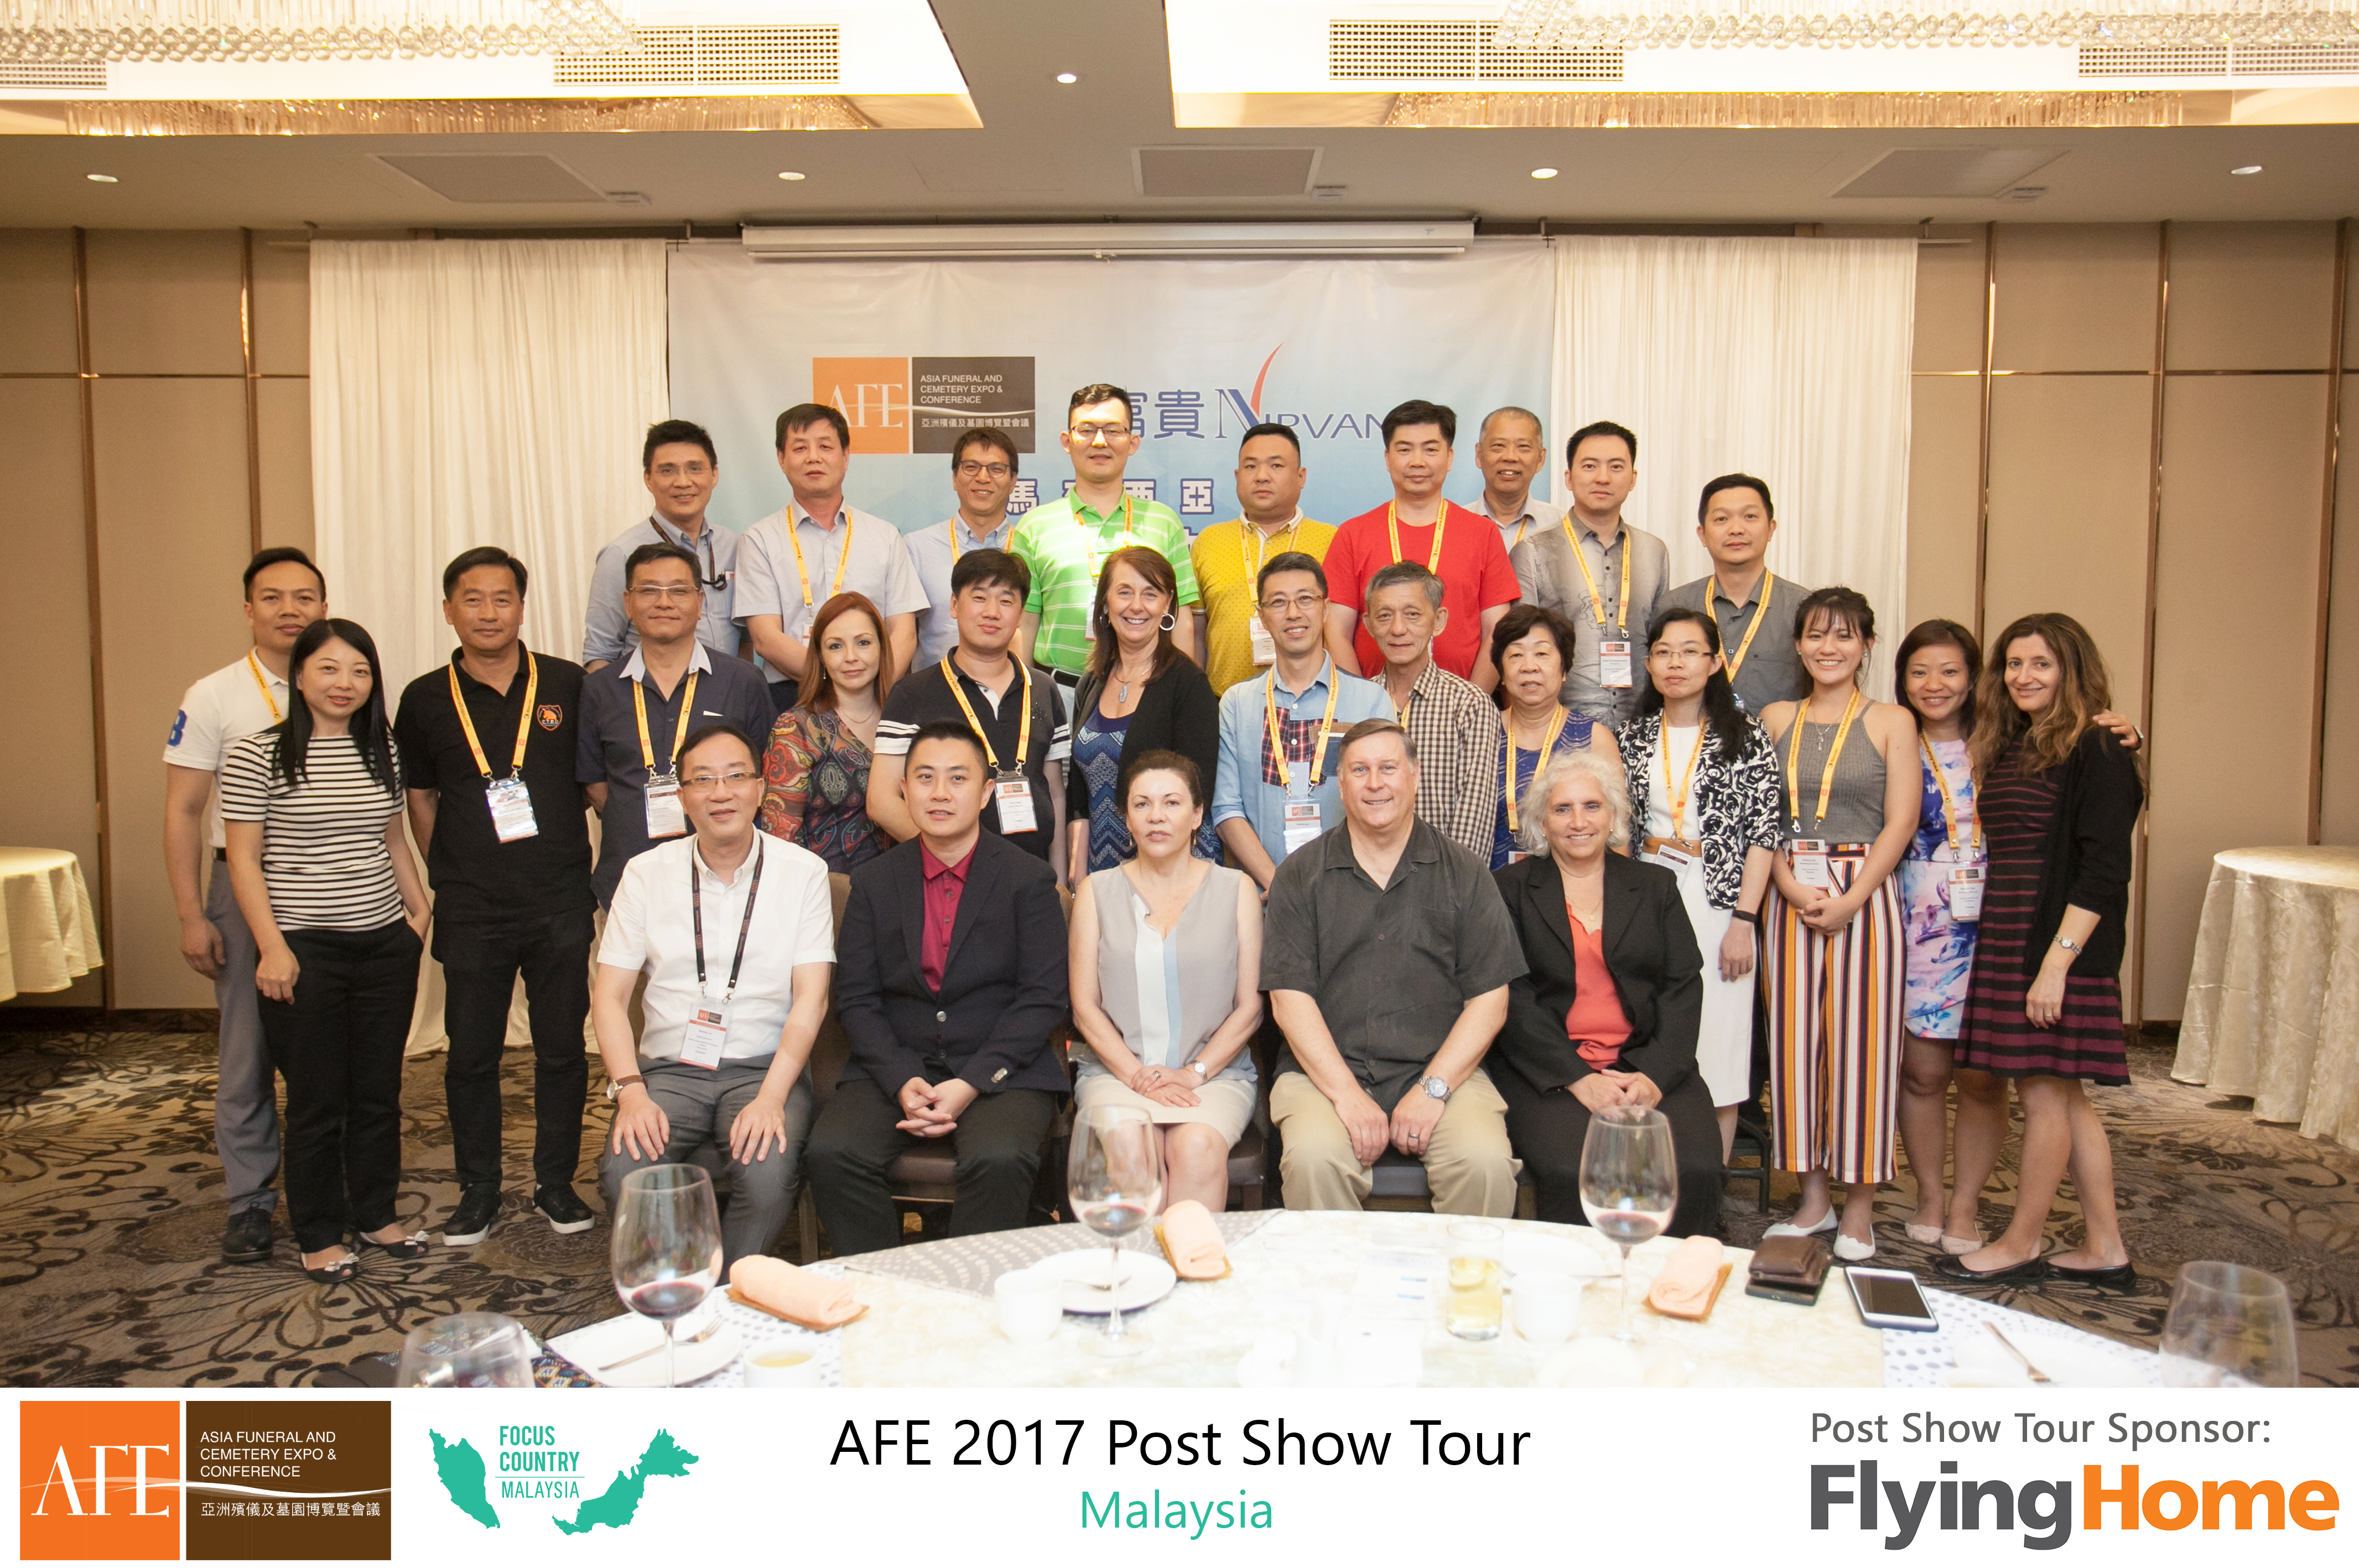 AFE Post Show Tour 2017 Day 2 - 38